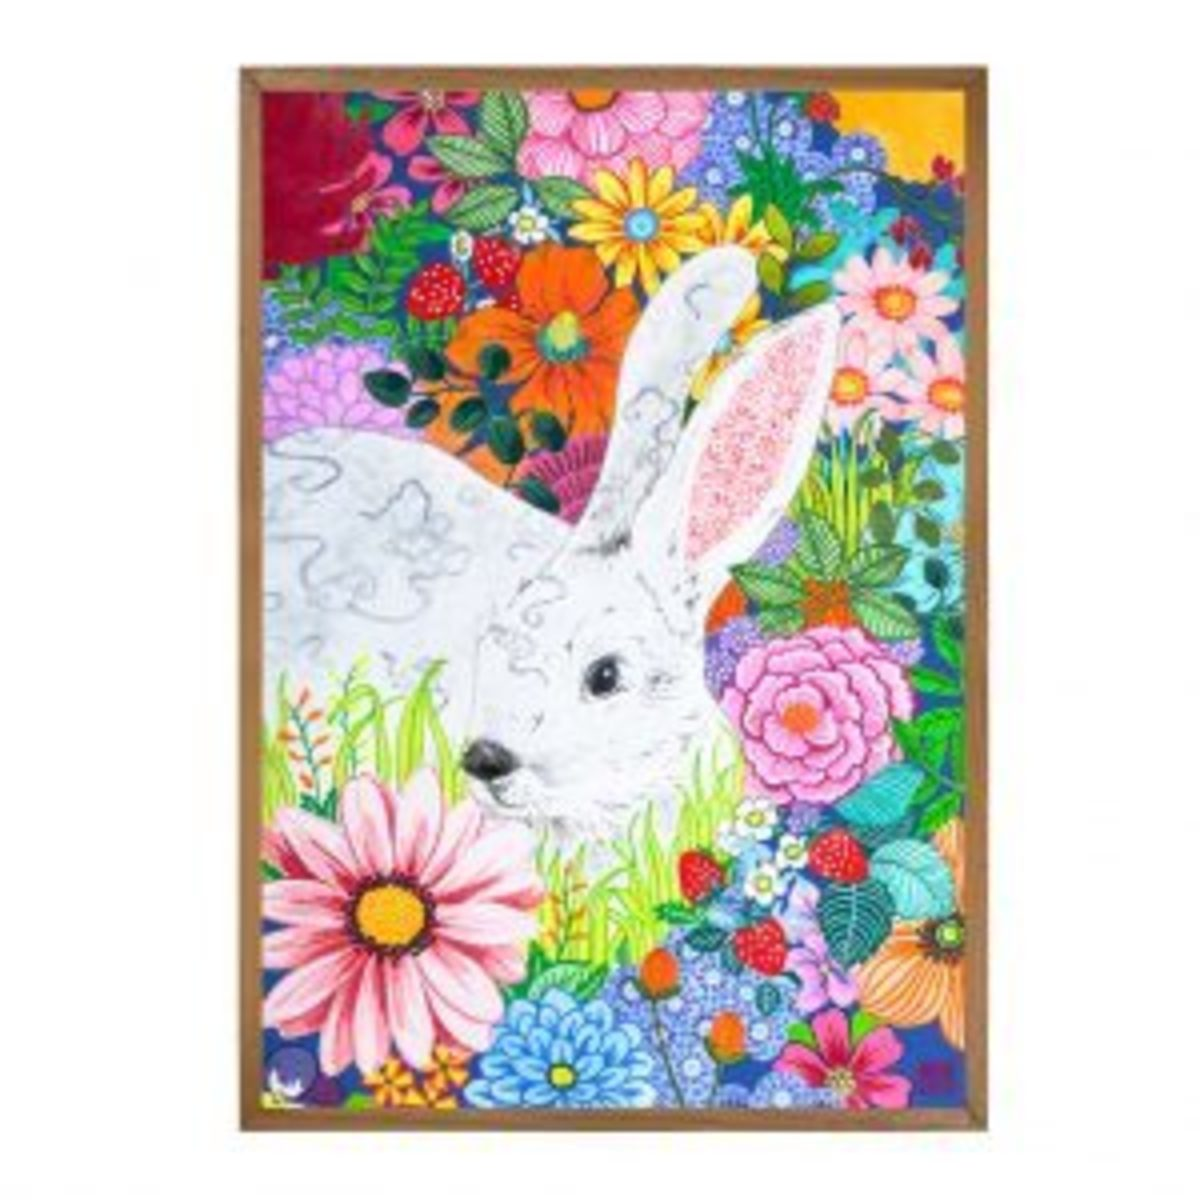 Rabbit - Limited Edition Print of 25 (Framed)